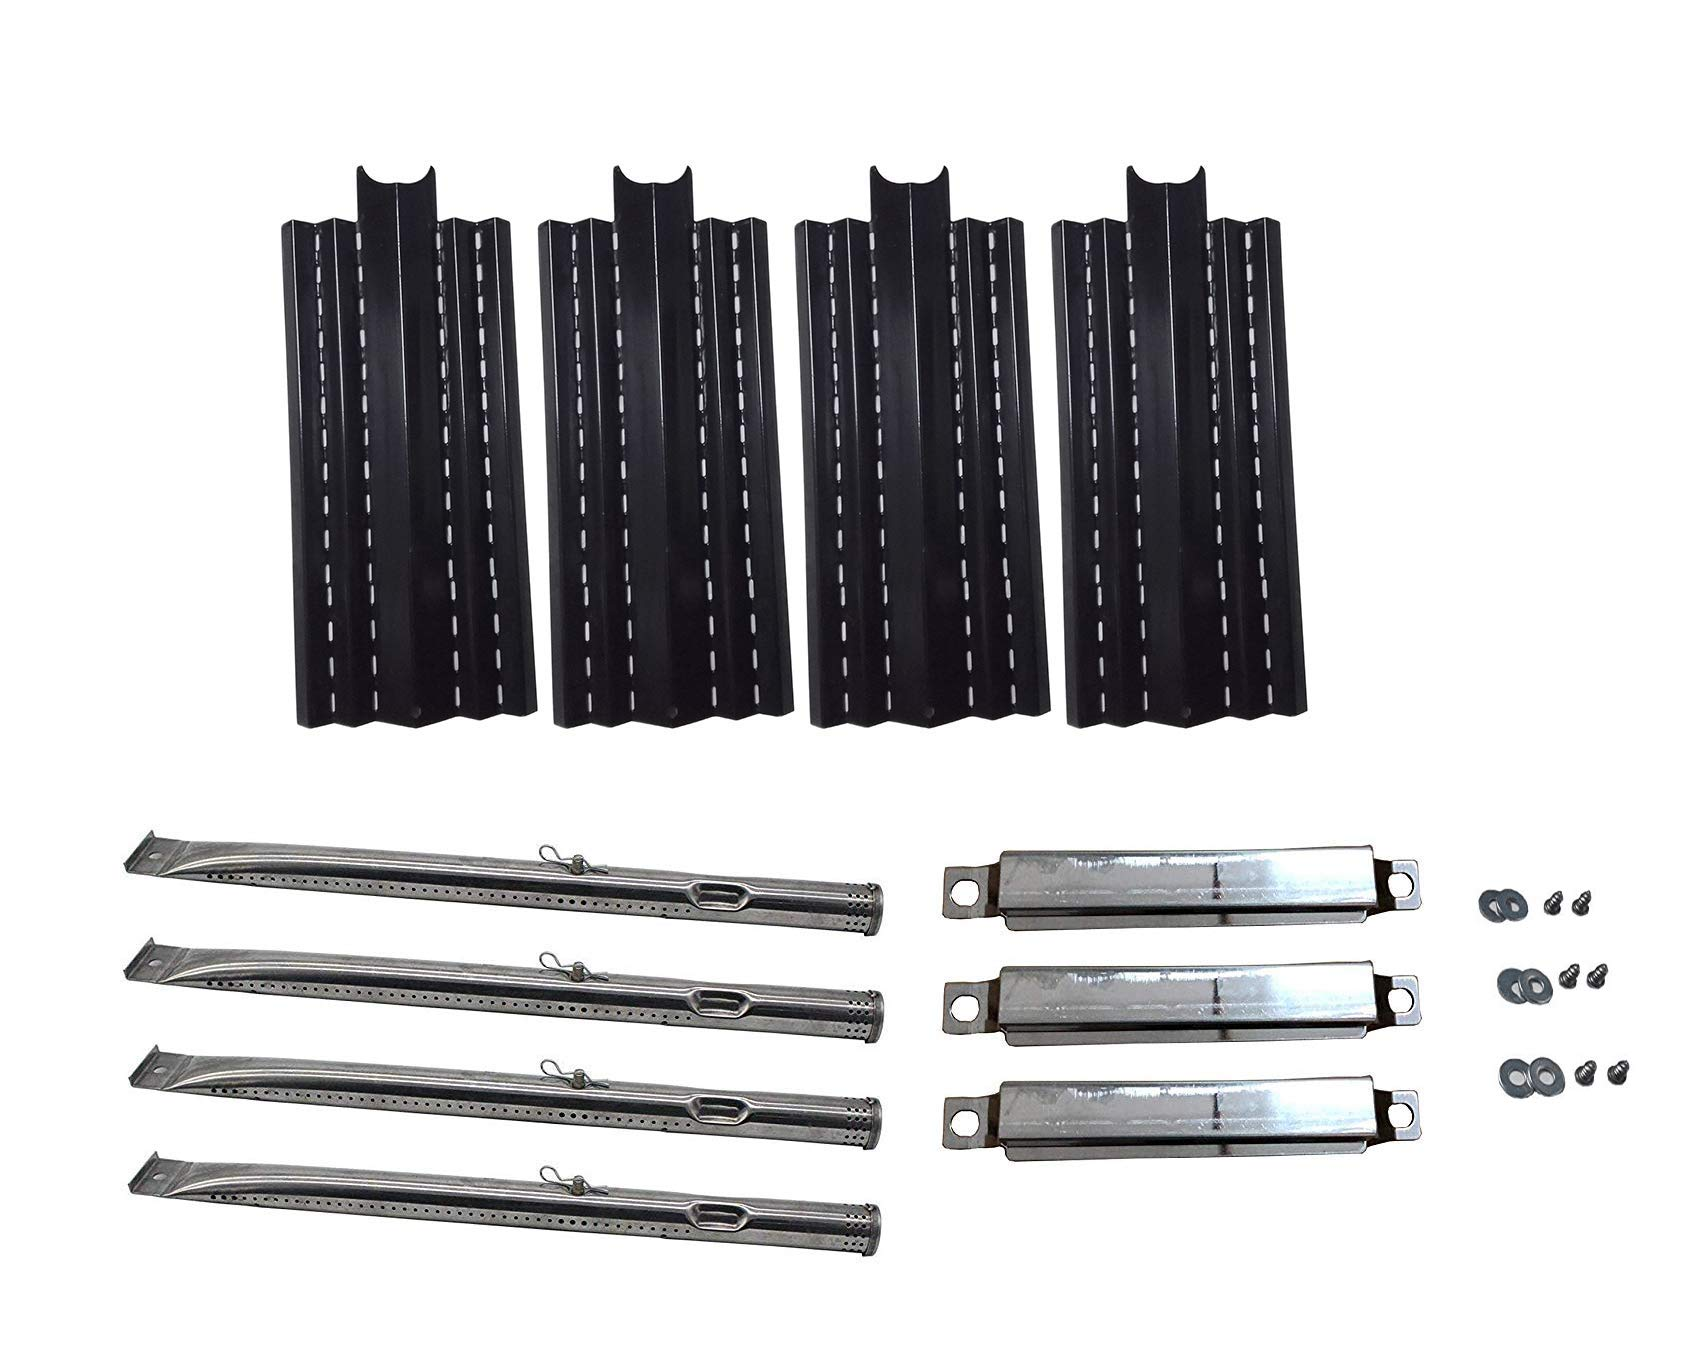 Zljoint Replacement Porcelain Steel Heat Plates and Stainless Steel Grill Burner Crossover Tube for Kenmore 415.23666310, 415.23667310, 640-05057299-9,